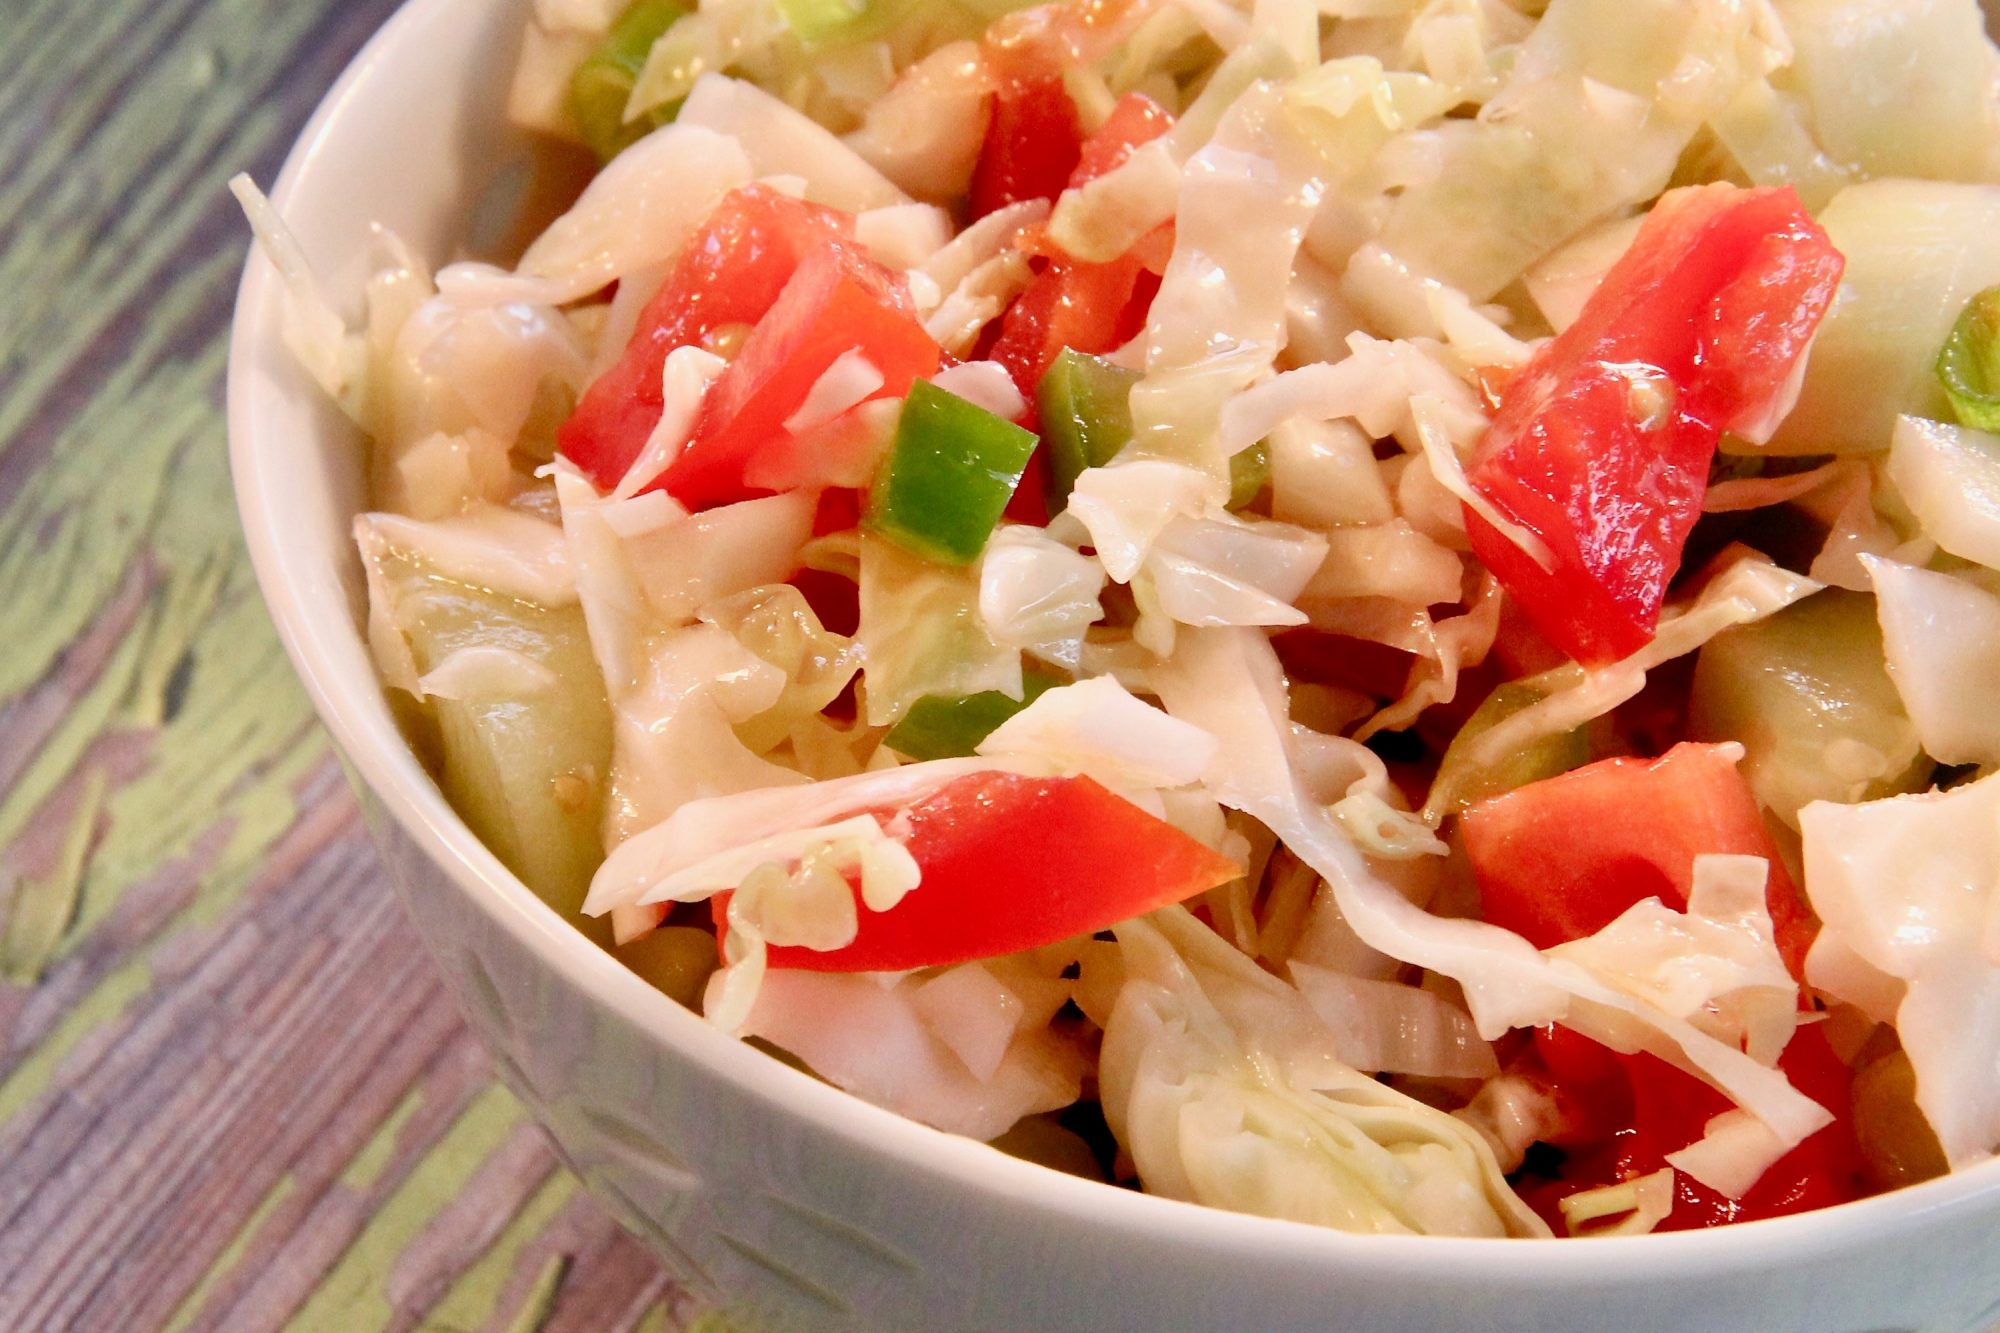 Picnic Marinated Summer Slaw in white bowl on wooden table